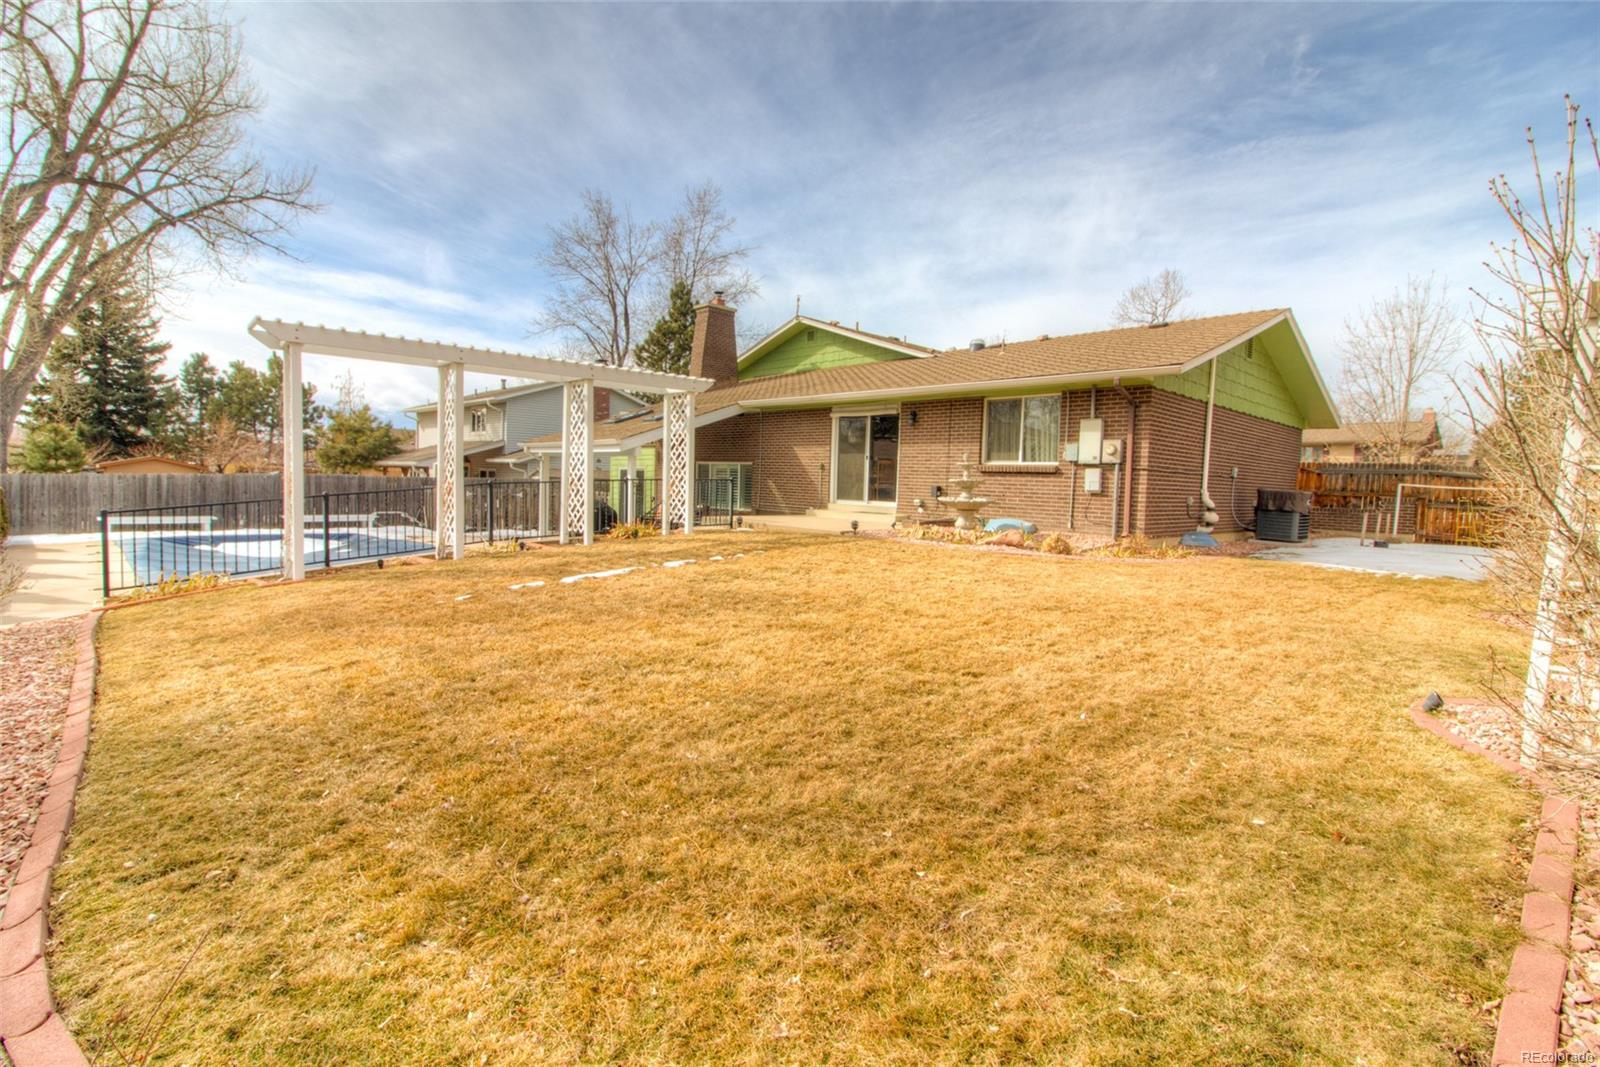 Great backyard with flat grass area too and nice side yard for a garden